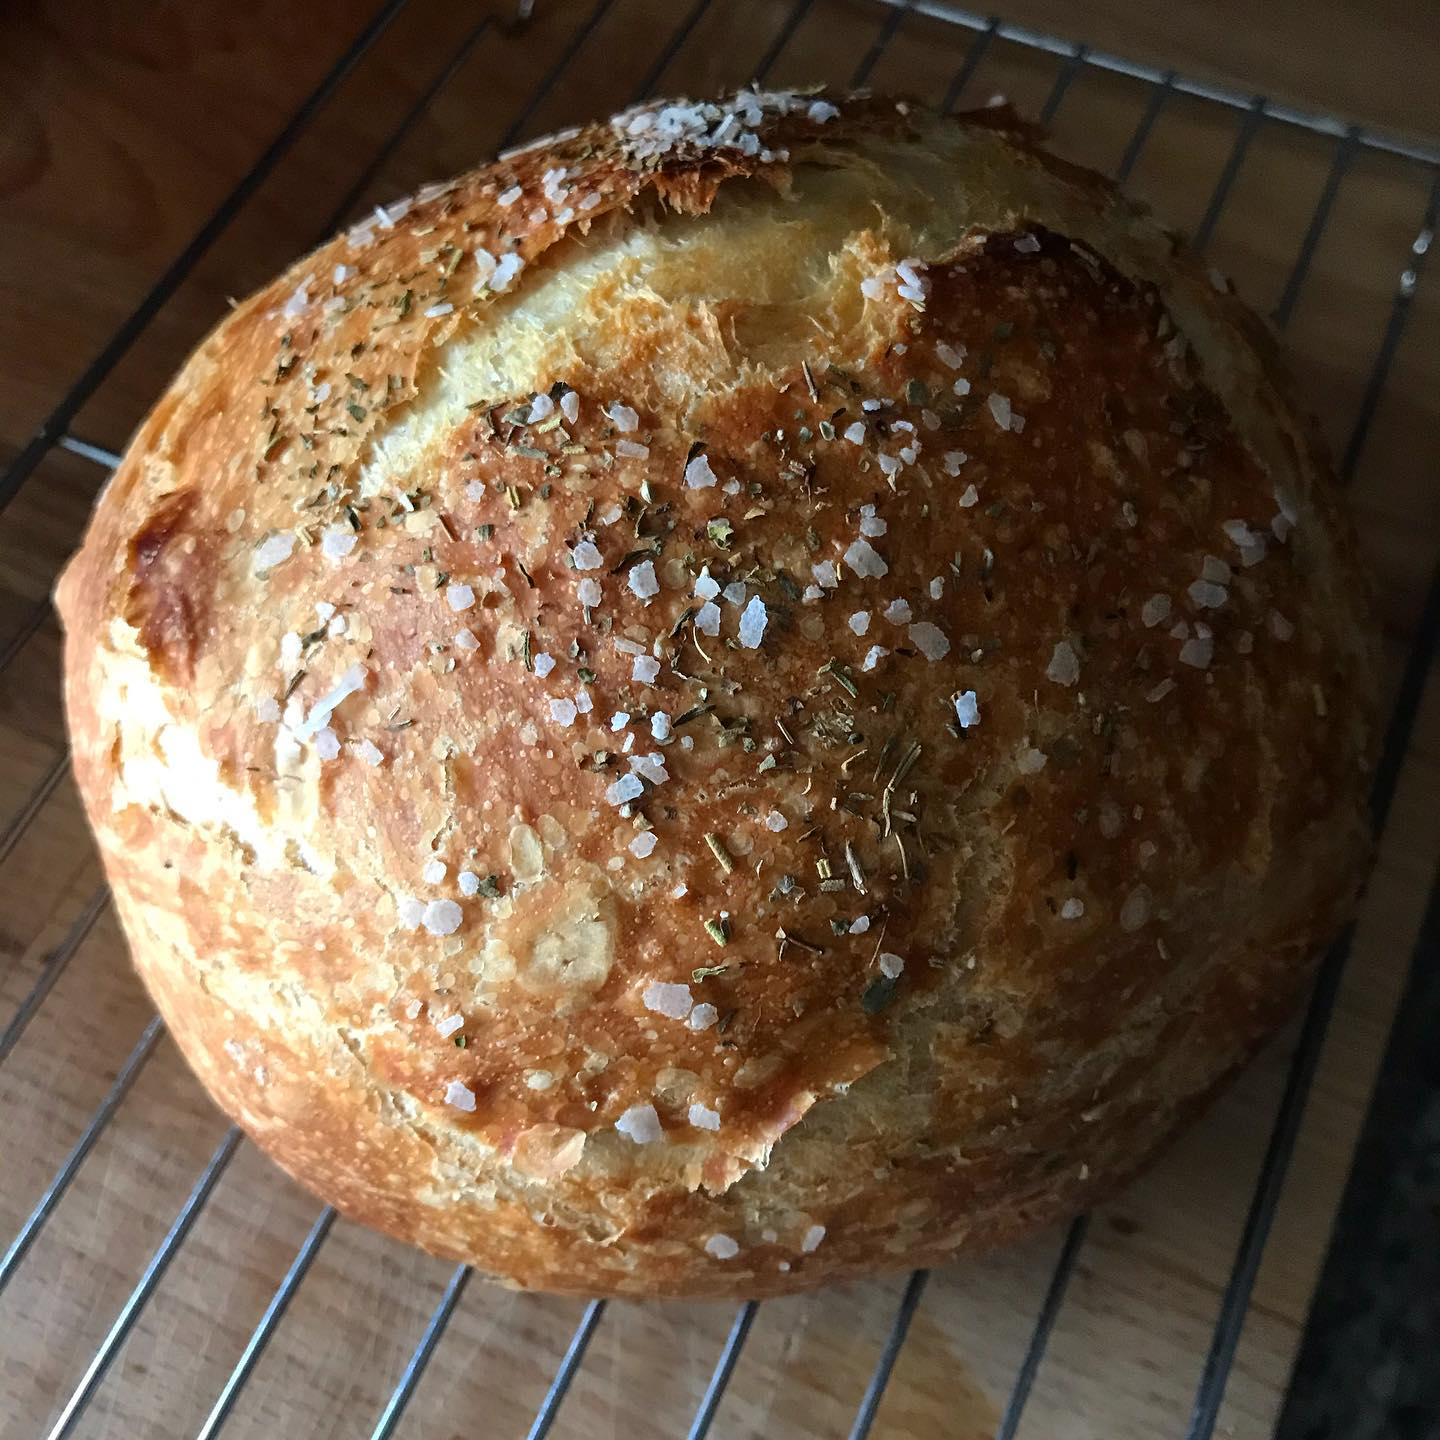 What with keeping up with the sourdough, I forget about my trusty standby no-knead. Mmmm, with herbes de Provence and salt!